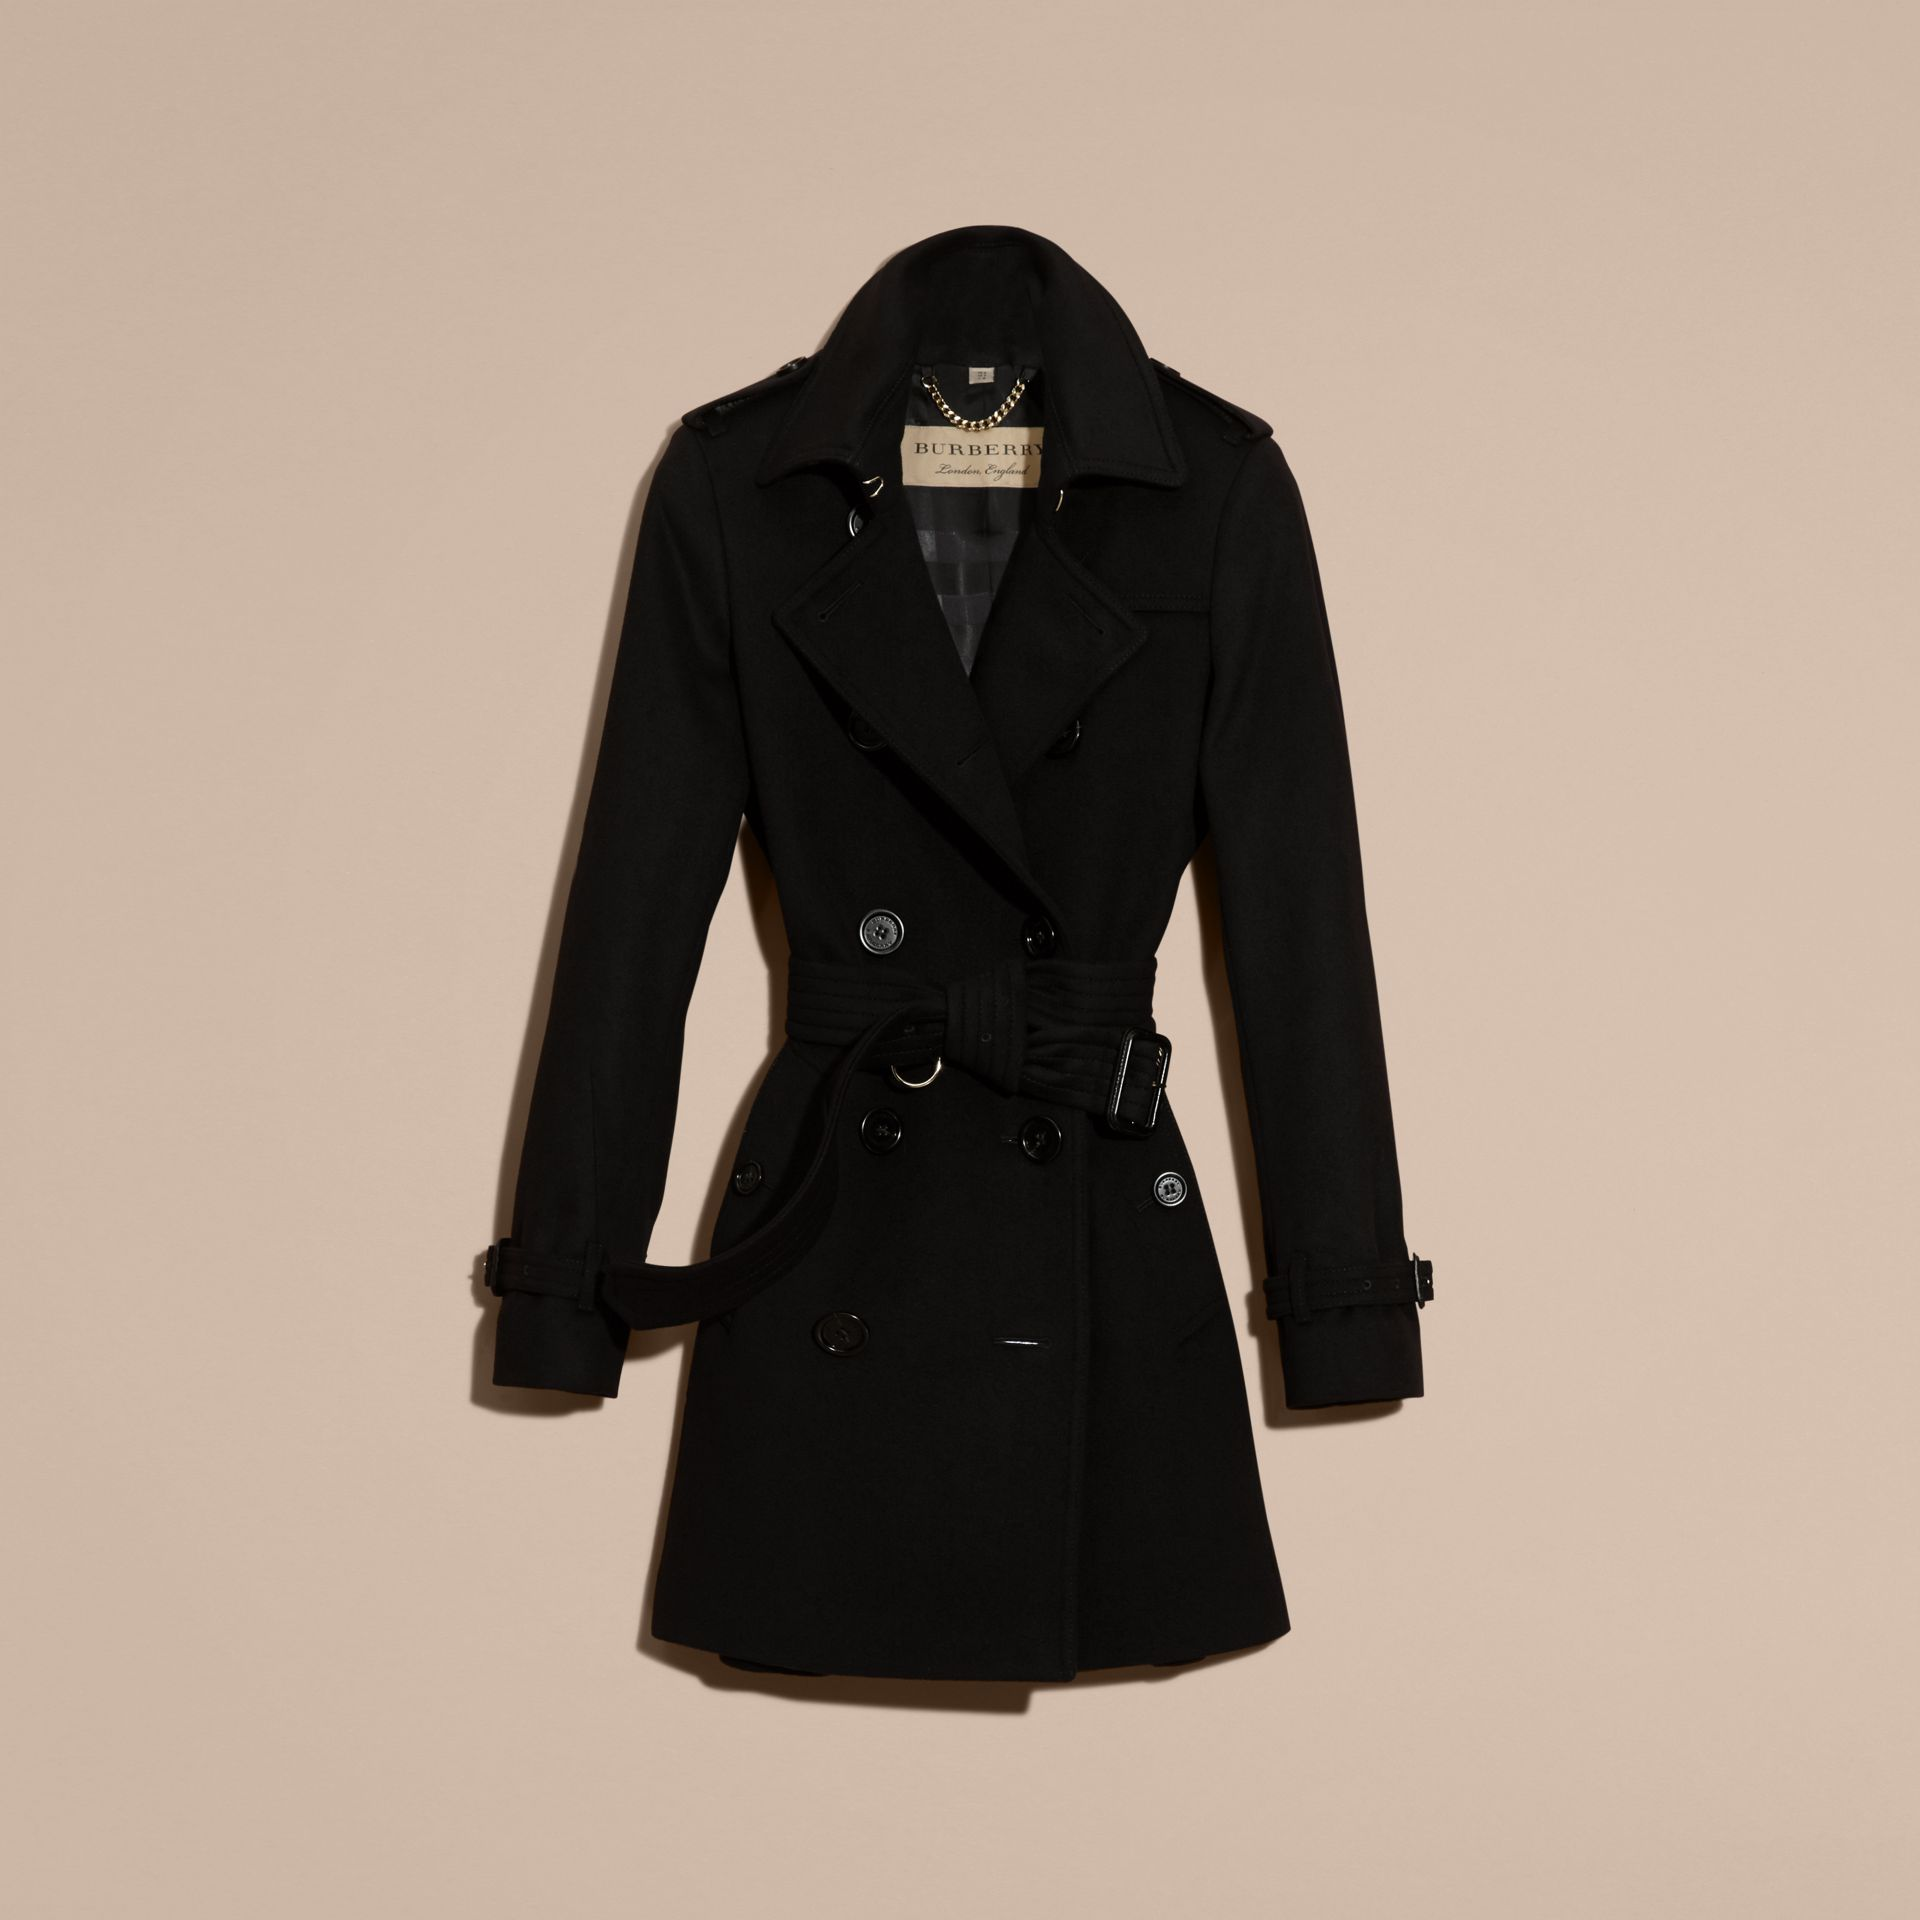 Wool Cashmere Trench Coat in Black - Women | Burberry Hong Kong - gallery image 4